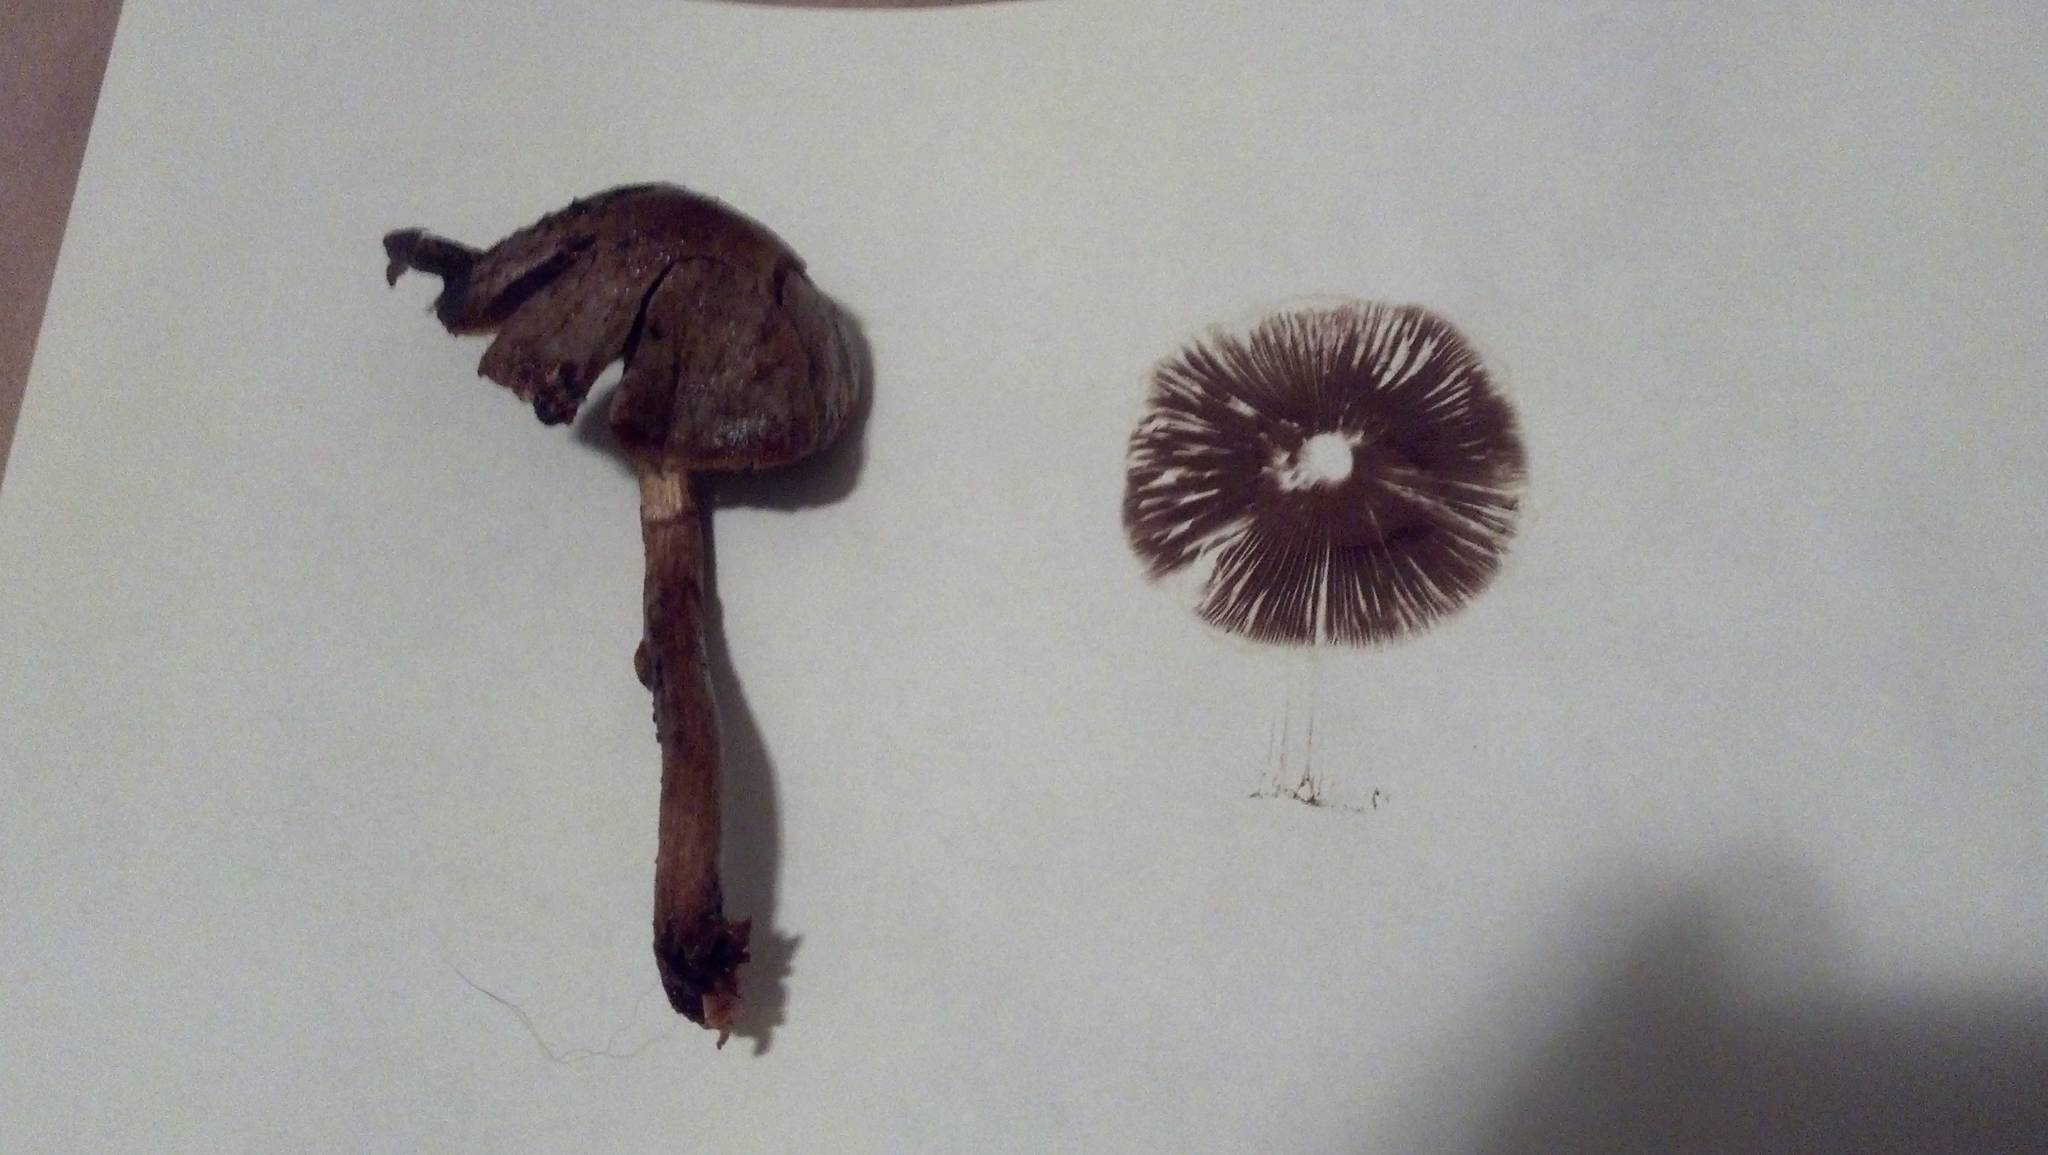 mushroom identification help mushroom hunting and identification